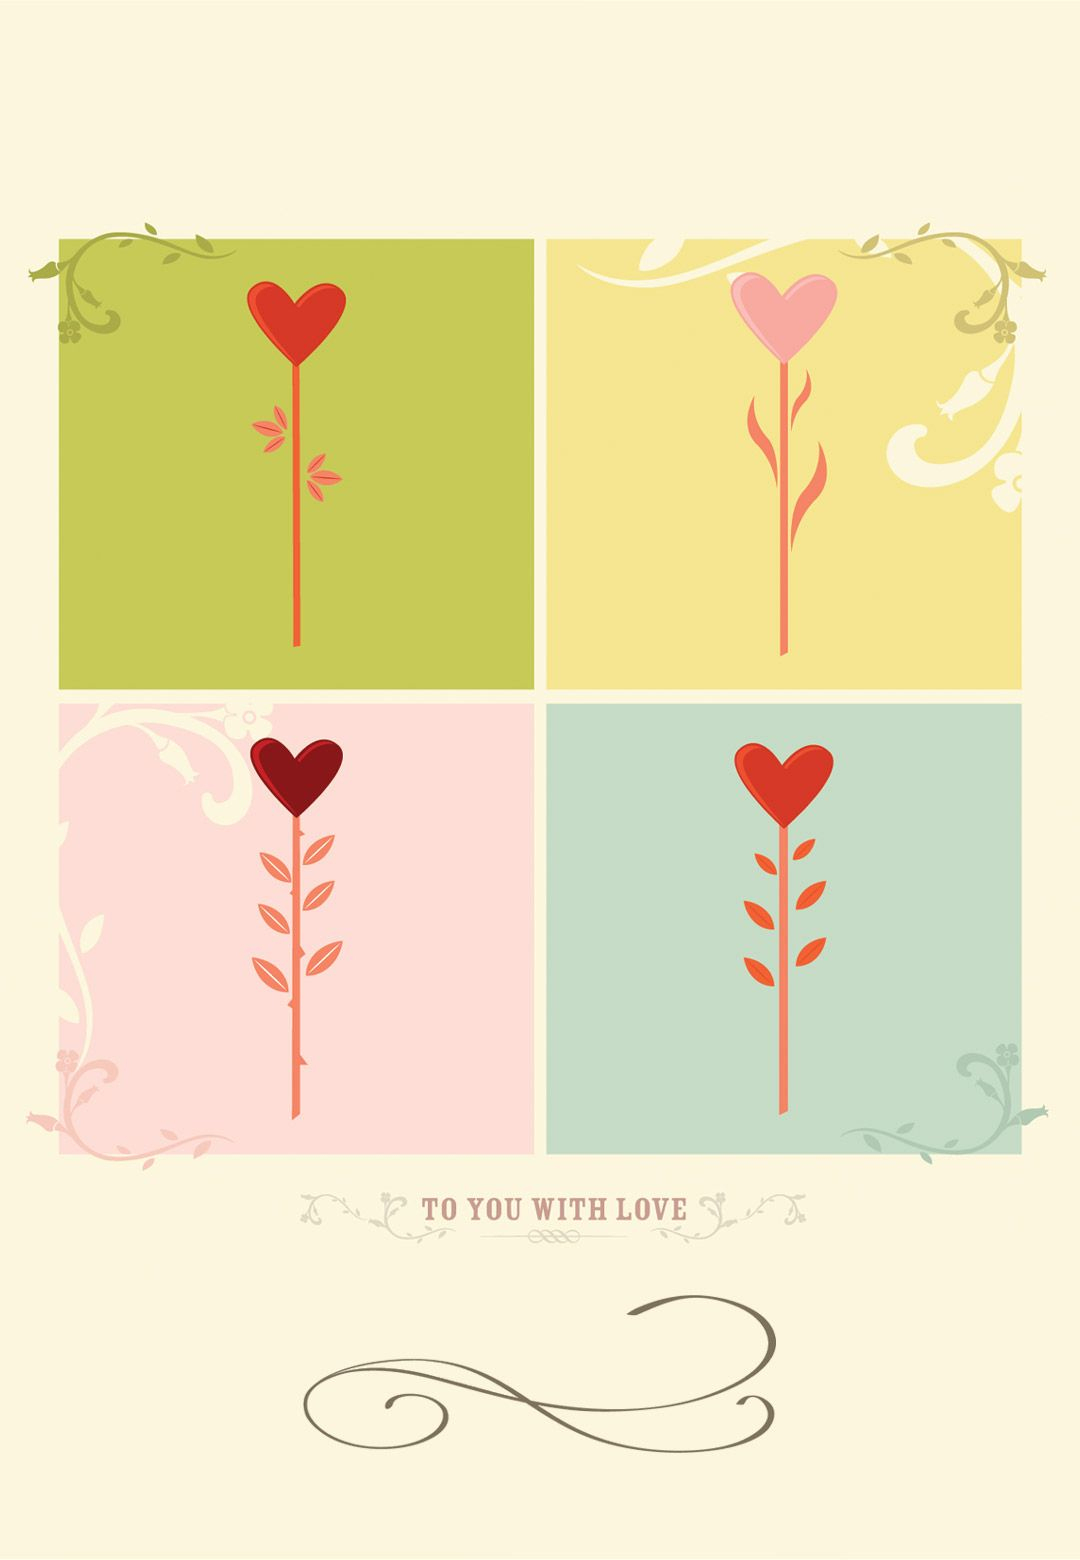 Free Printable To You With Love Greeting Card | Home | Pinterest - Free Printable Love Greeting Cards